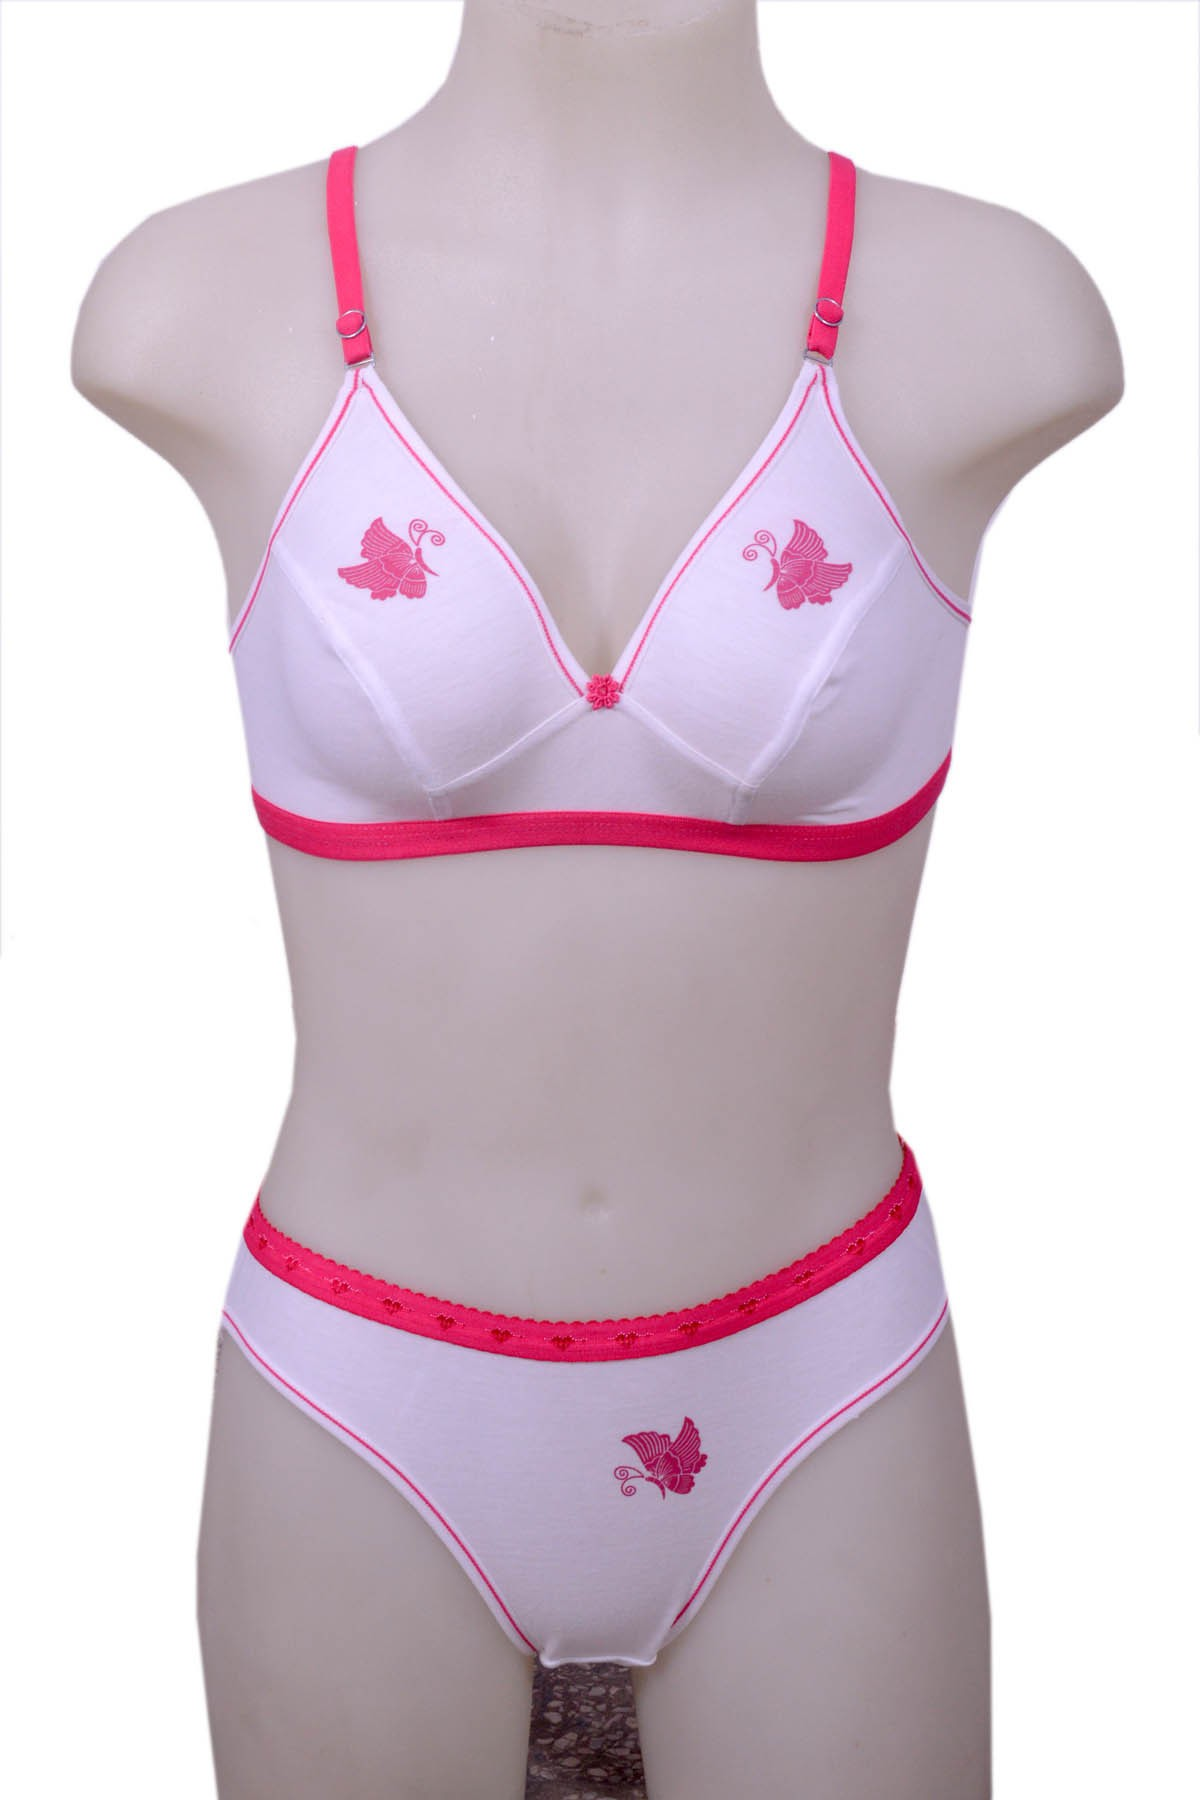 Calibra Casual Lingerie Set